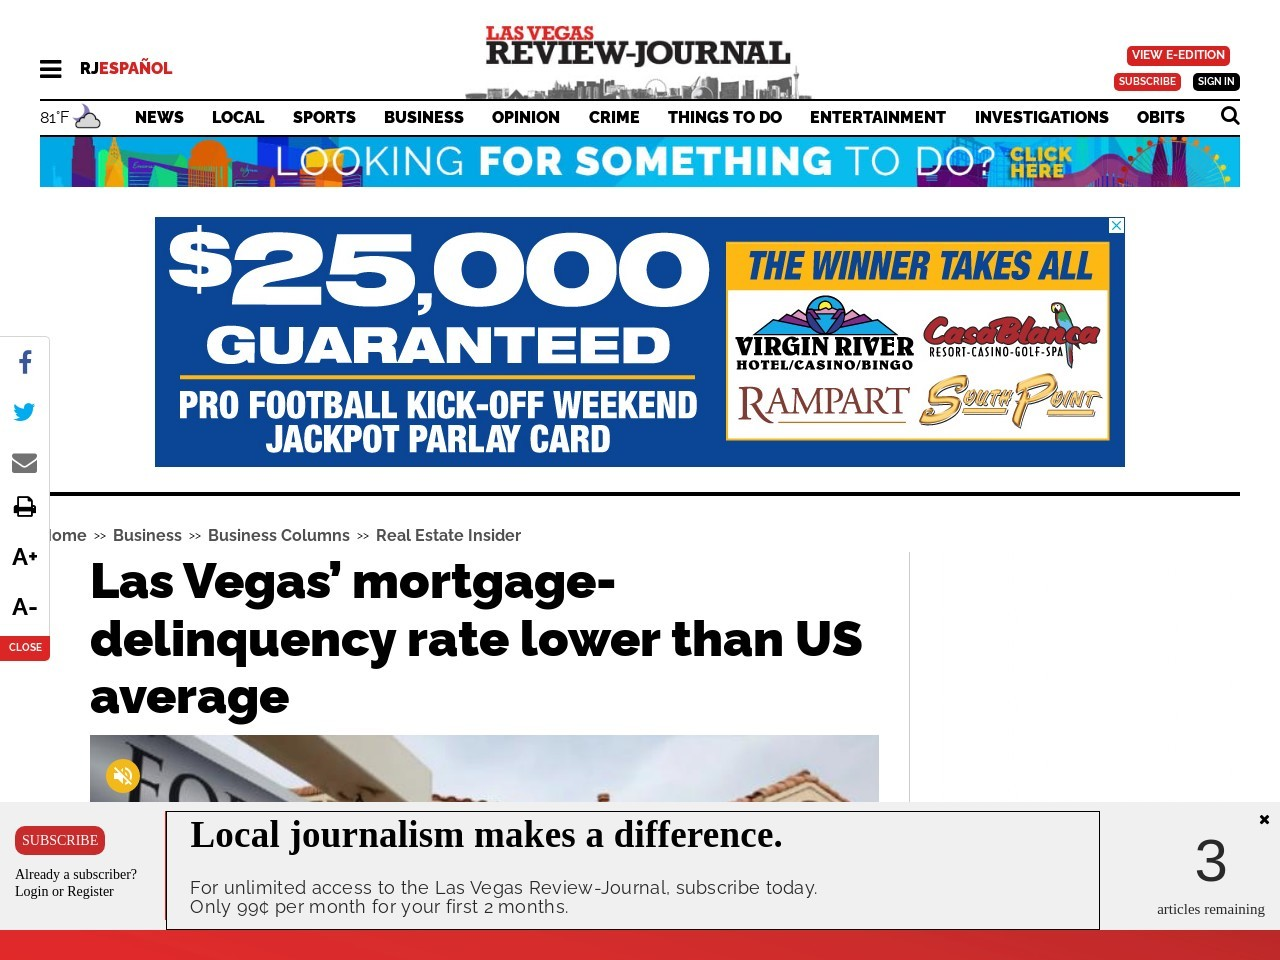 Las Vegas' mortgage-delinquency rate lower than US average